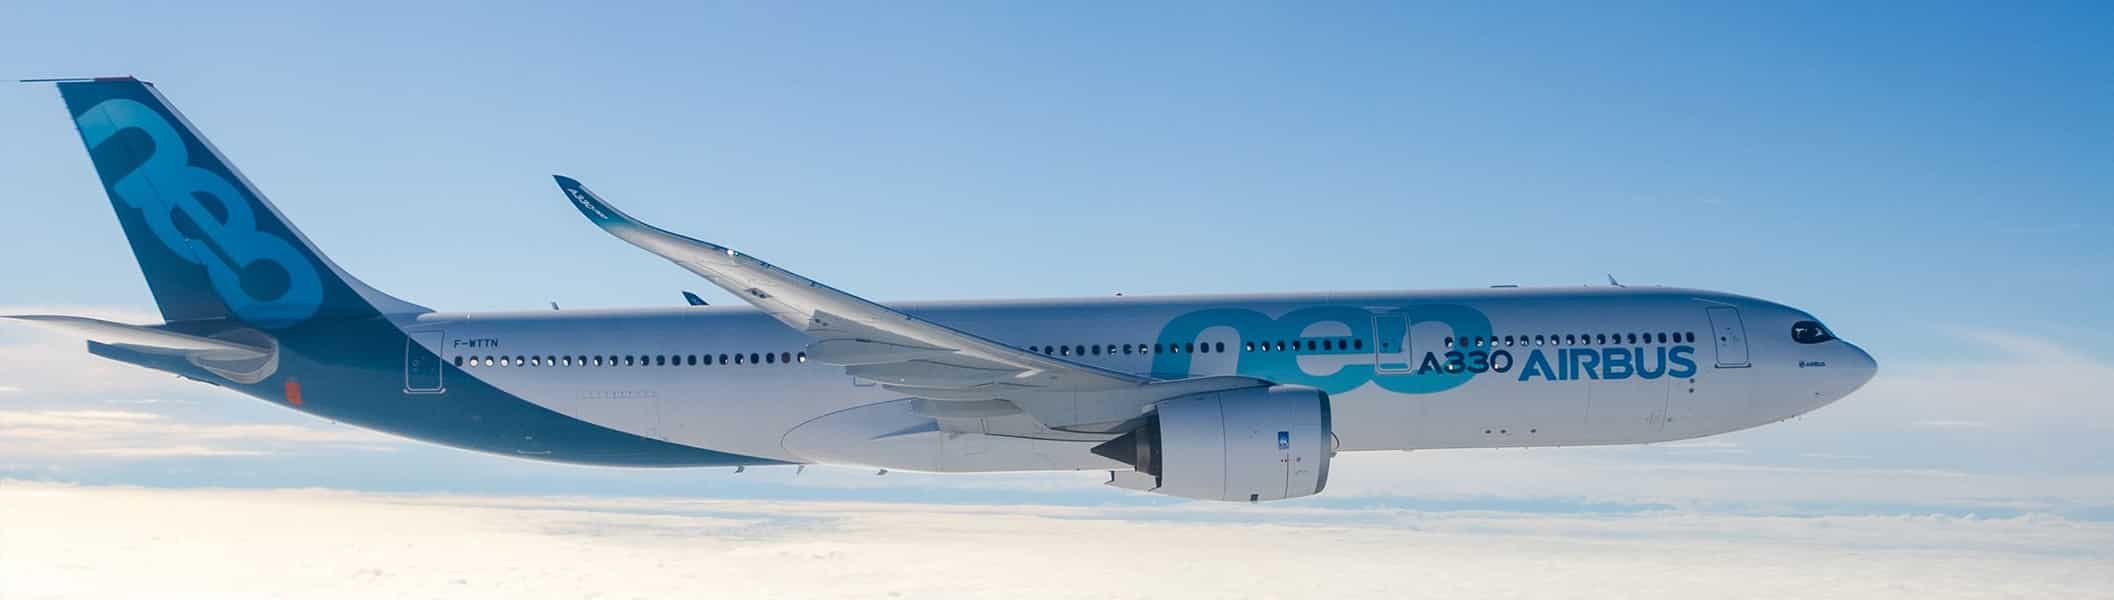 Airbus Q3 Results: Earnings Up, Lower 2019 Deliveries